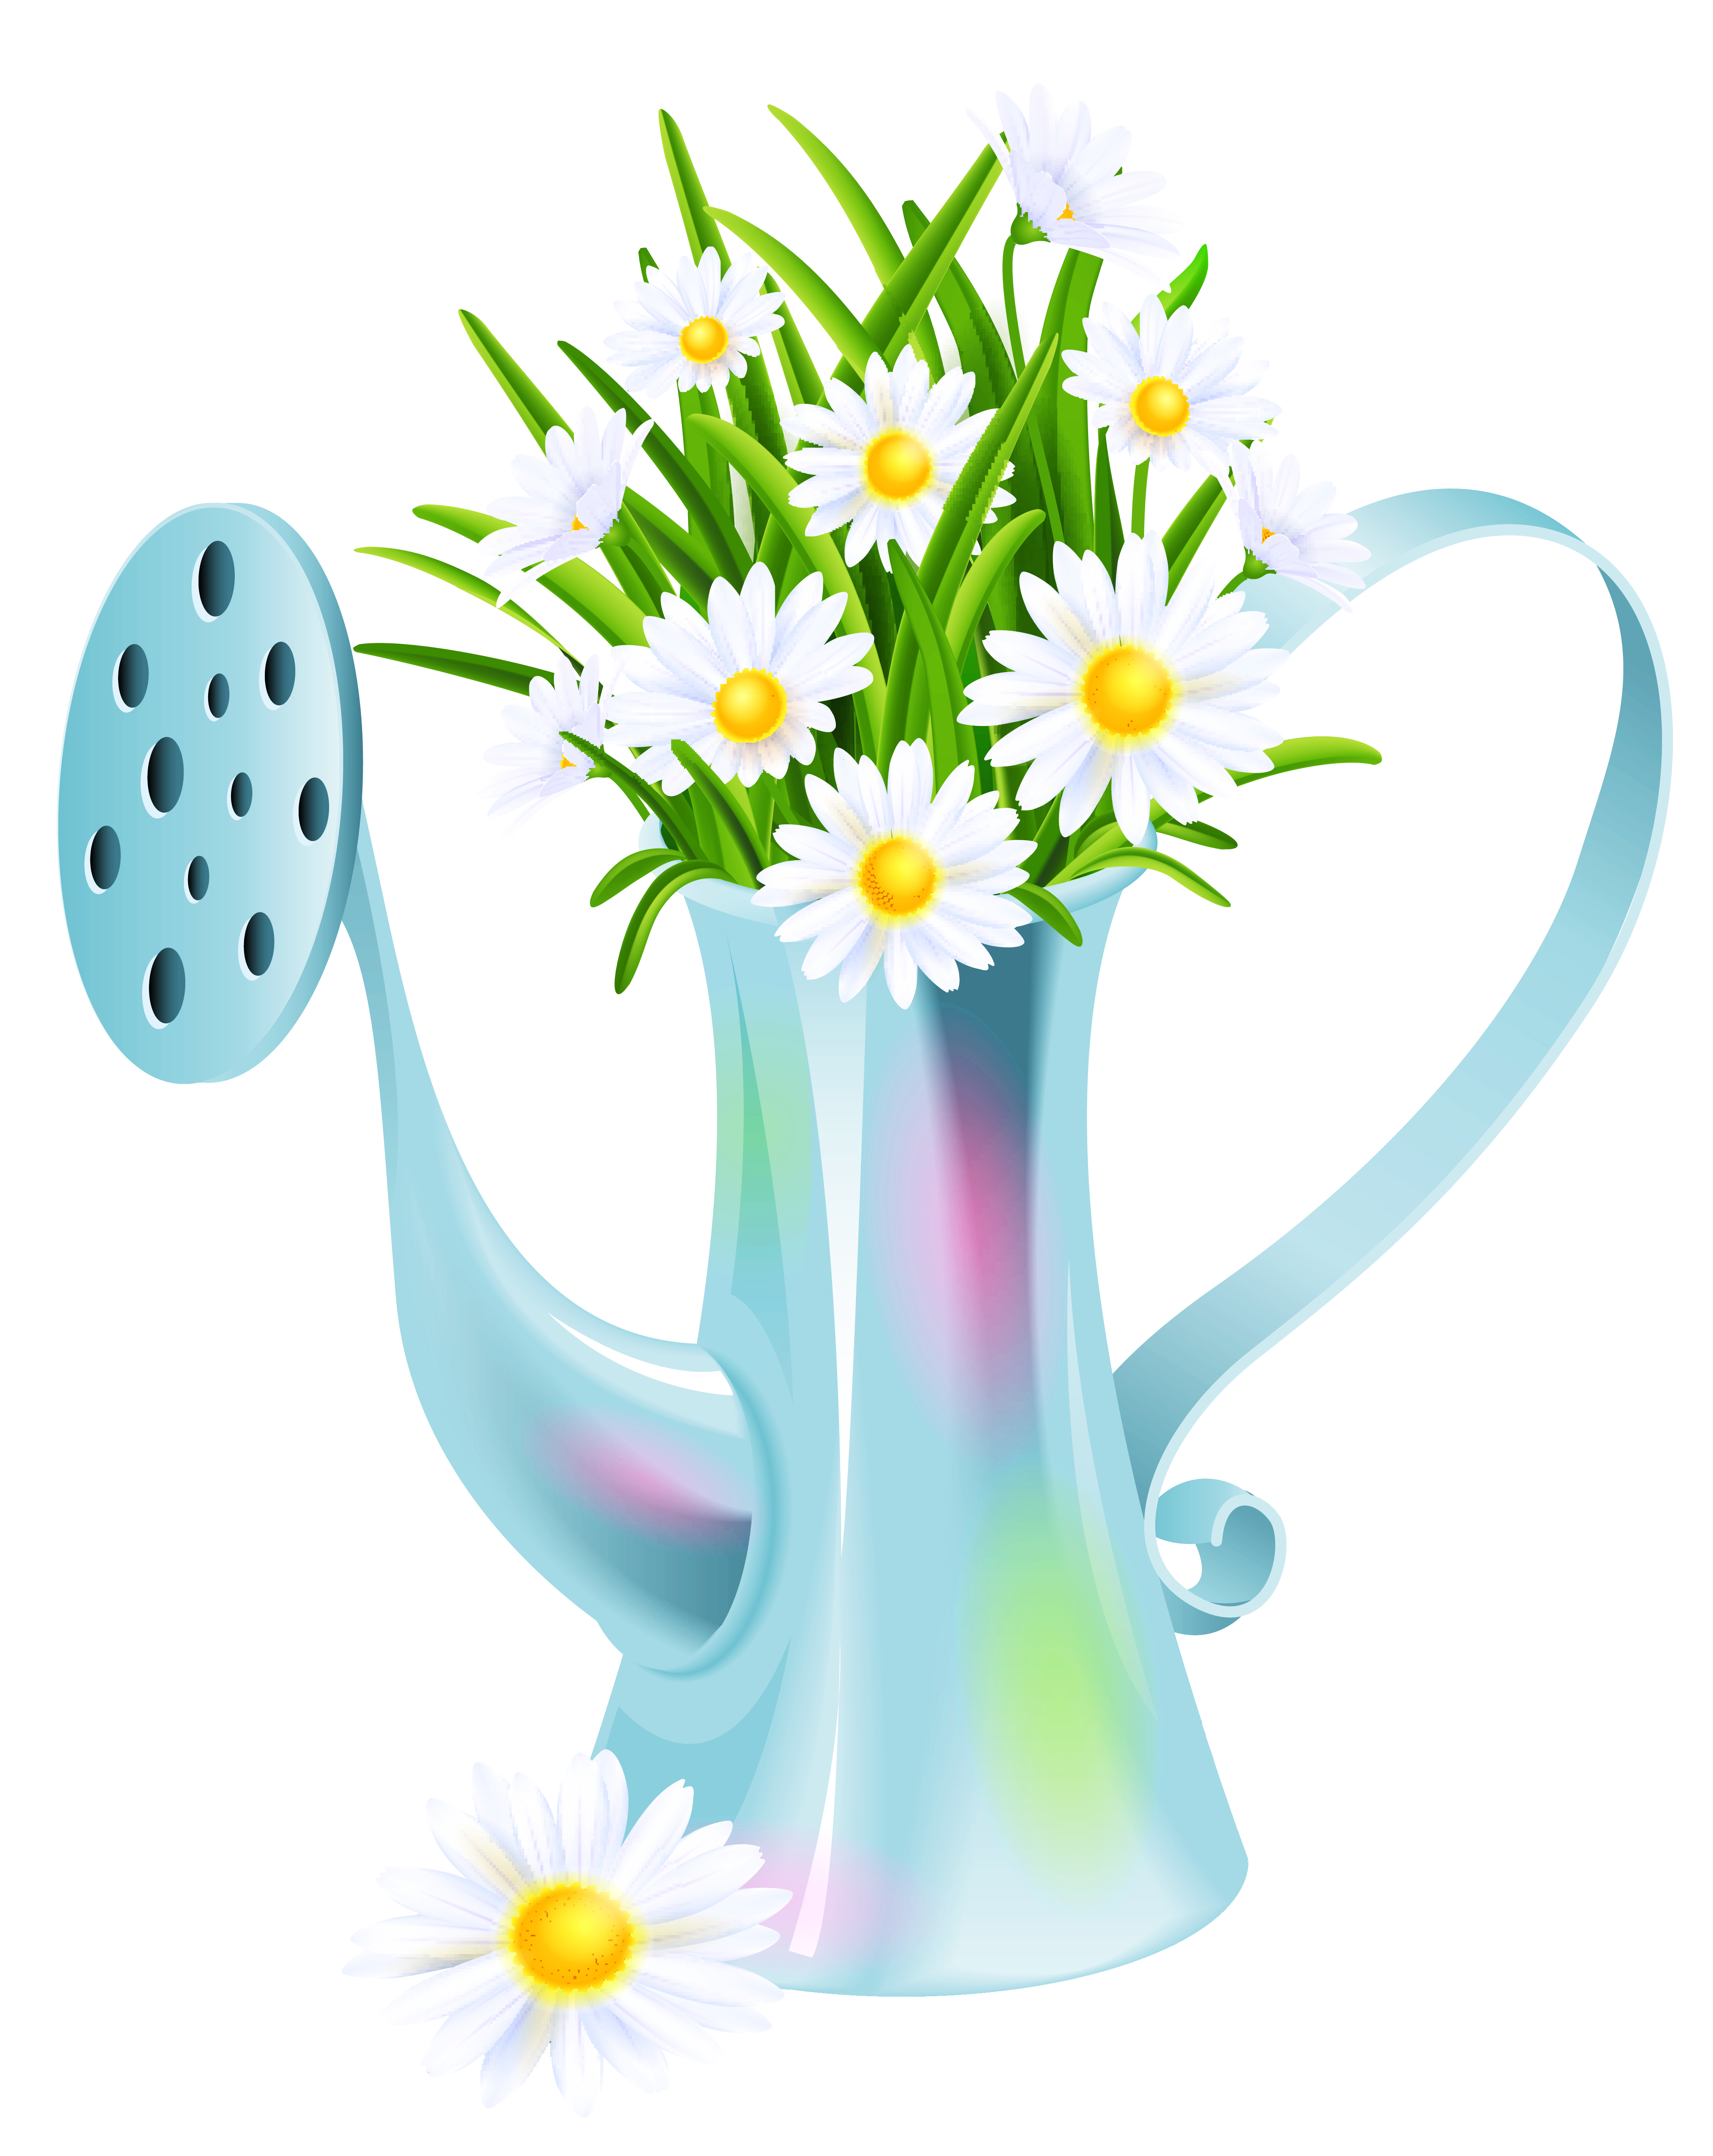 Water clipart spiral. Can with daisies png